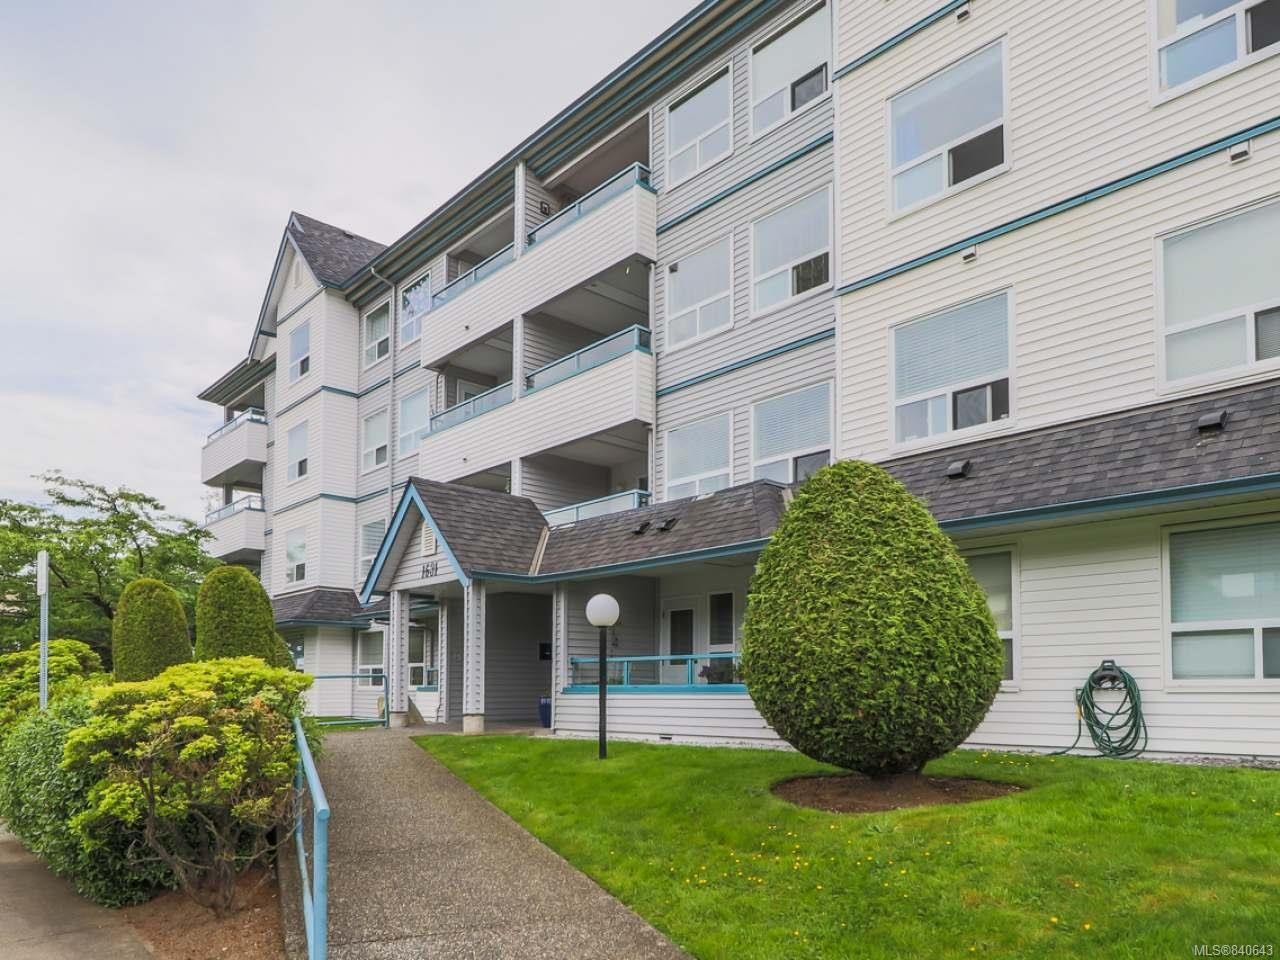 FEATURED LISTING: 107 - 1631 Dufferin Cres NANAIMO